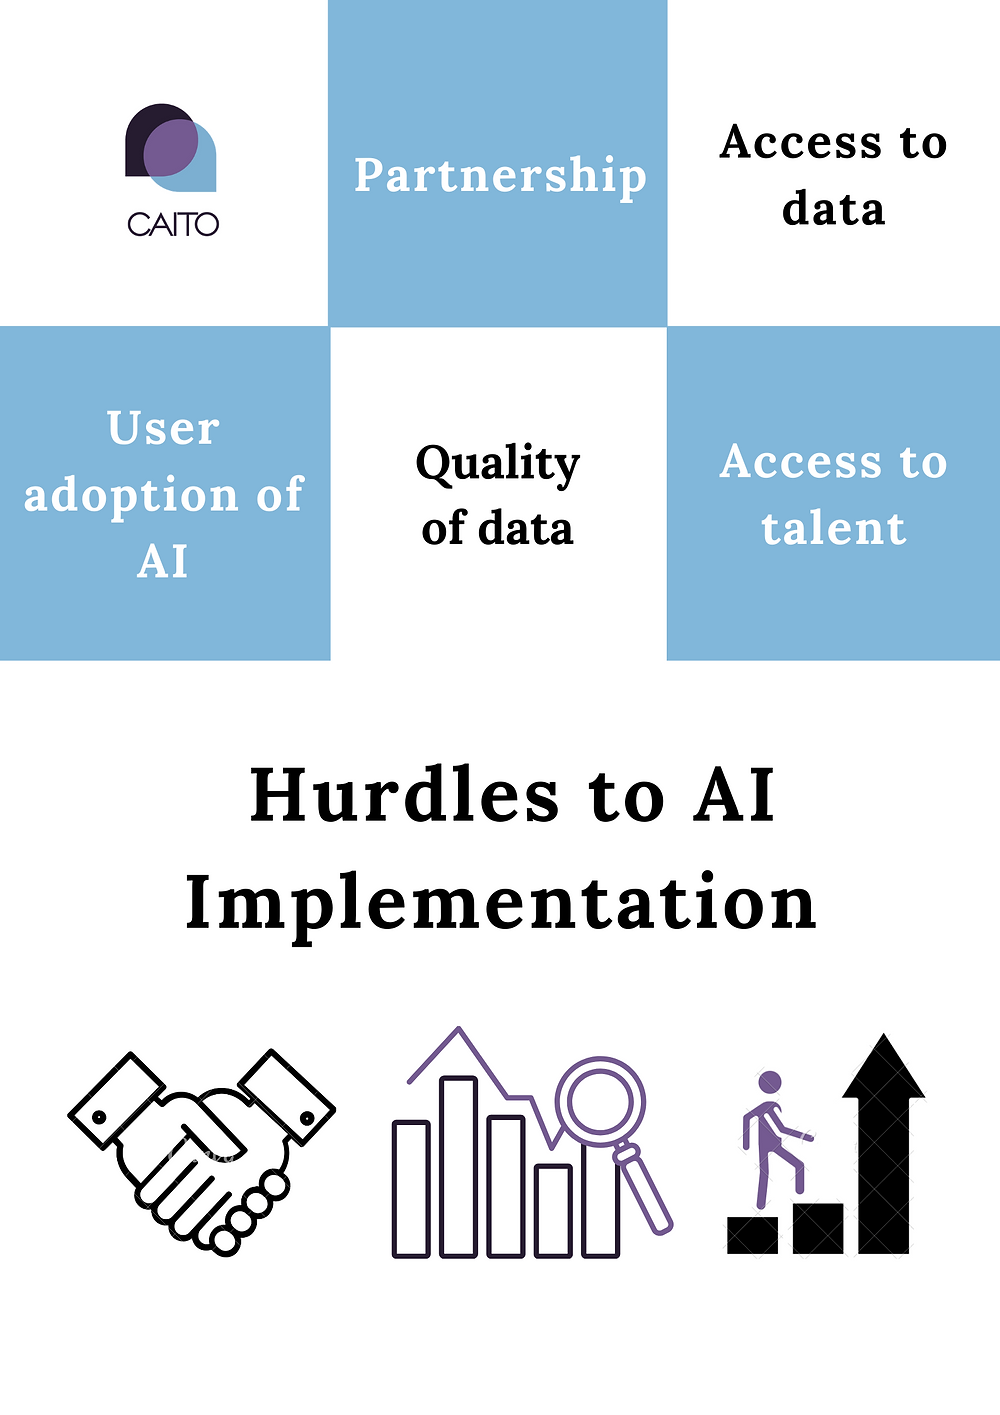 To successfully implement #AI, a roadmap is crucial.  At CAITO, we remove hurdles and work out staged implementations to ensure maximum value from the beginning.